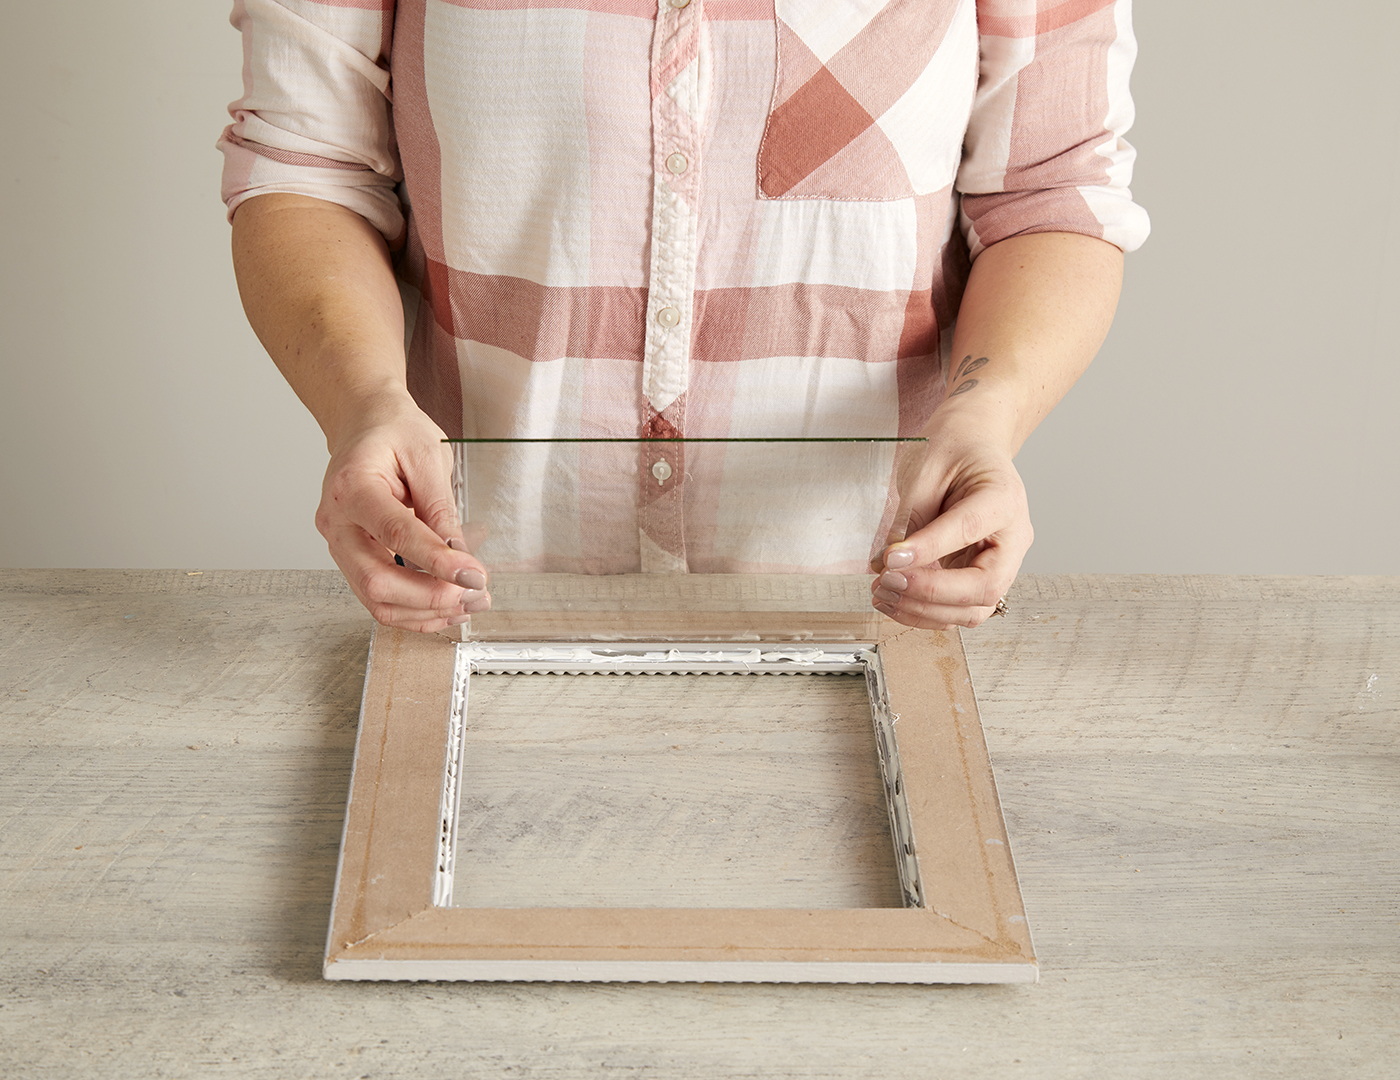 gluing glass from picture frame to frame